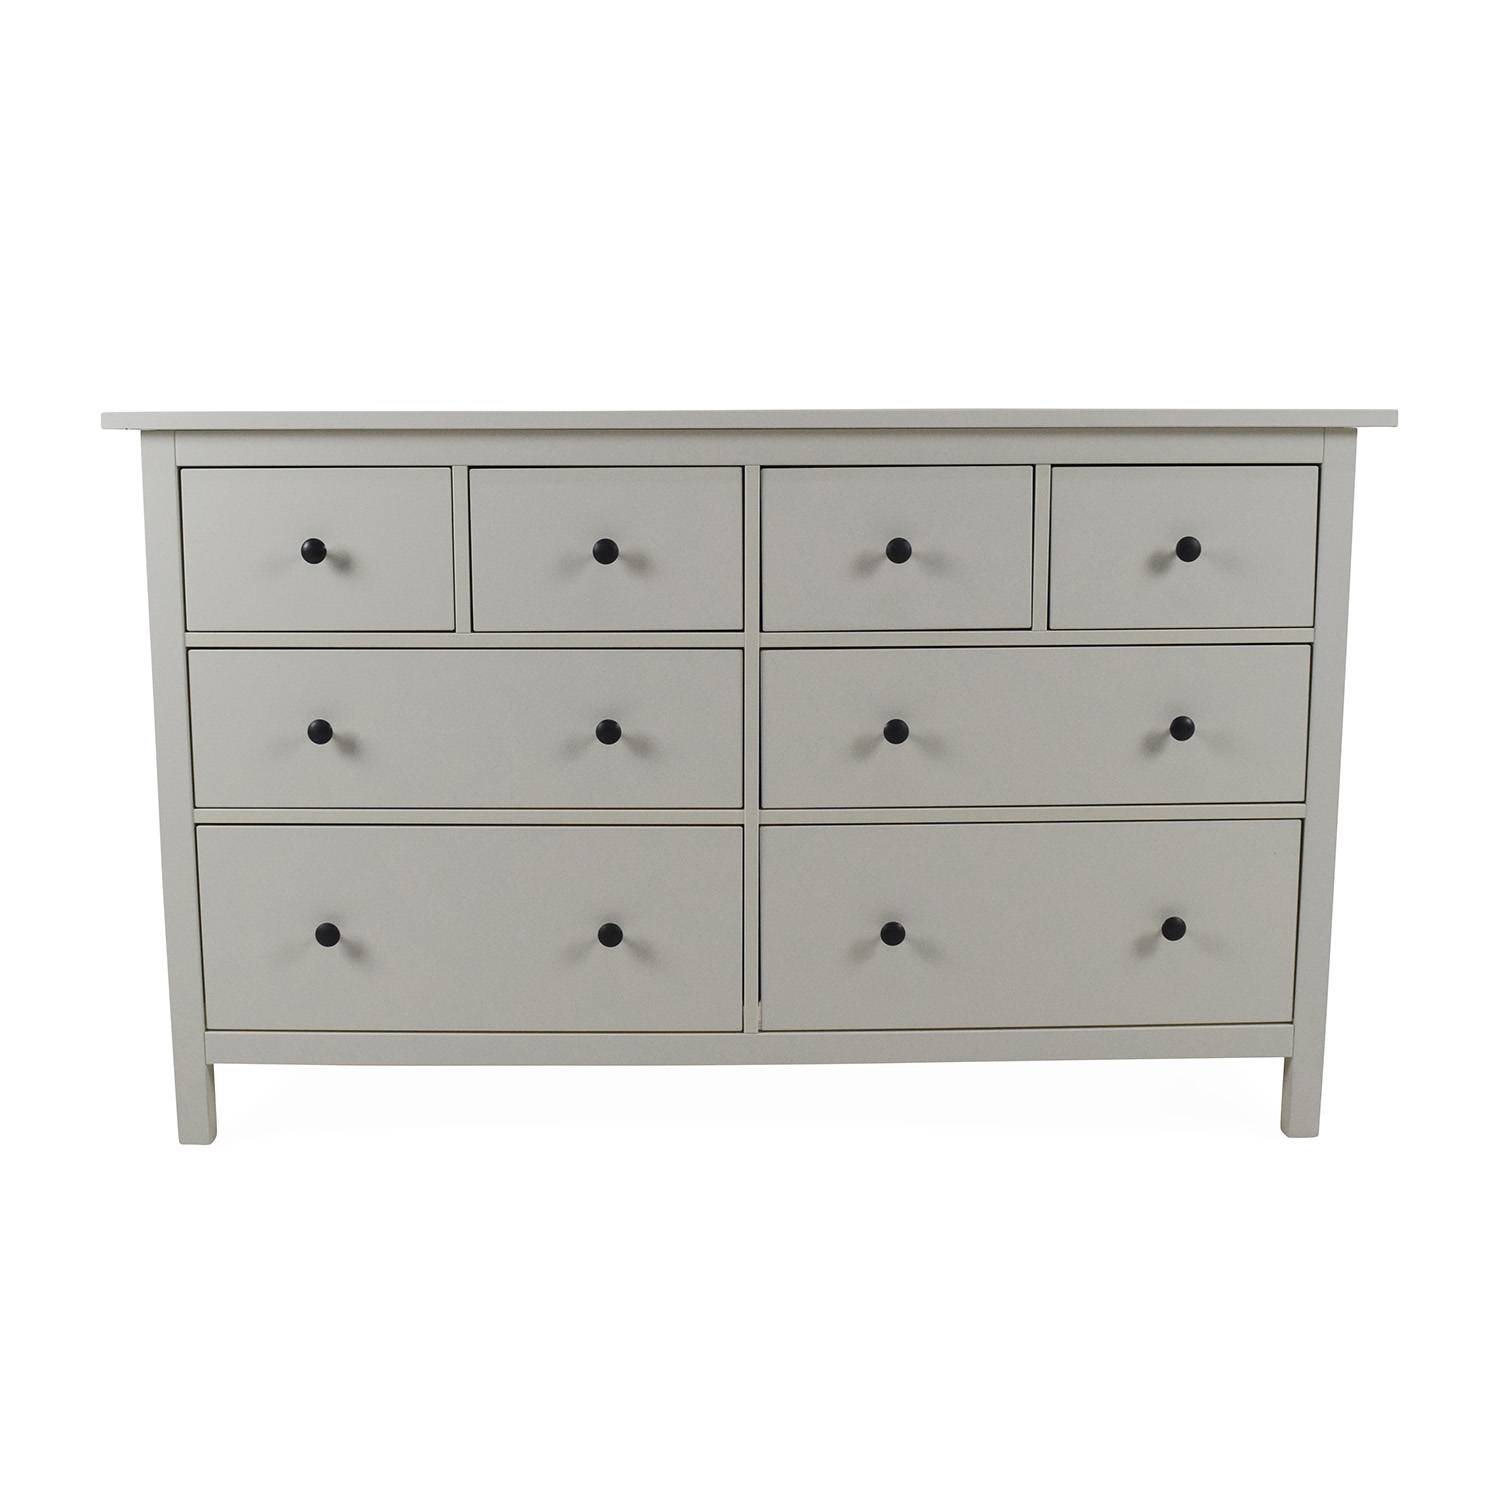 49% Off - Ikea Ikea Hemnes 8-Drawer Dresser / Storage for Second Hand Dressers And Sideboards (Image 1 of 15)